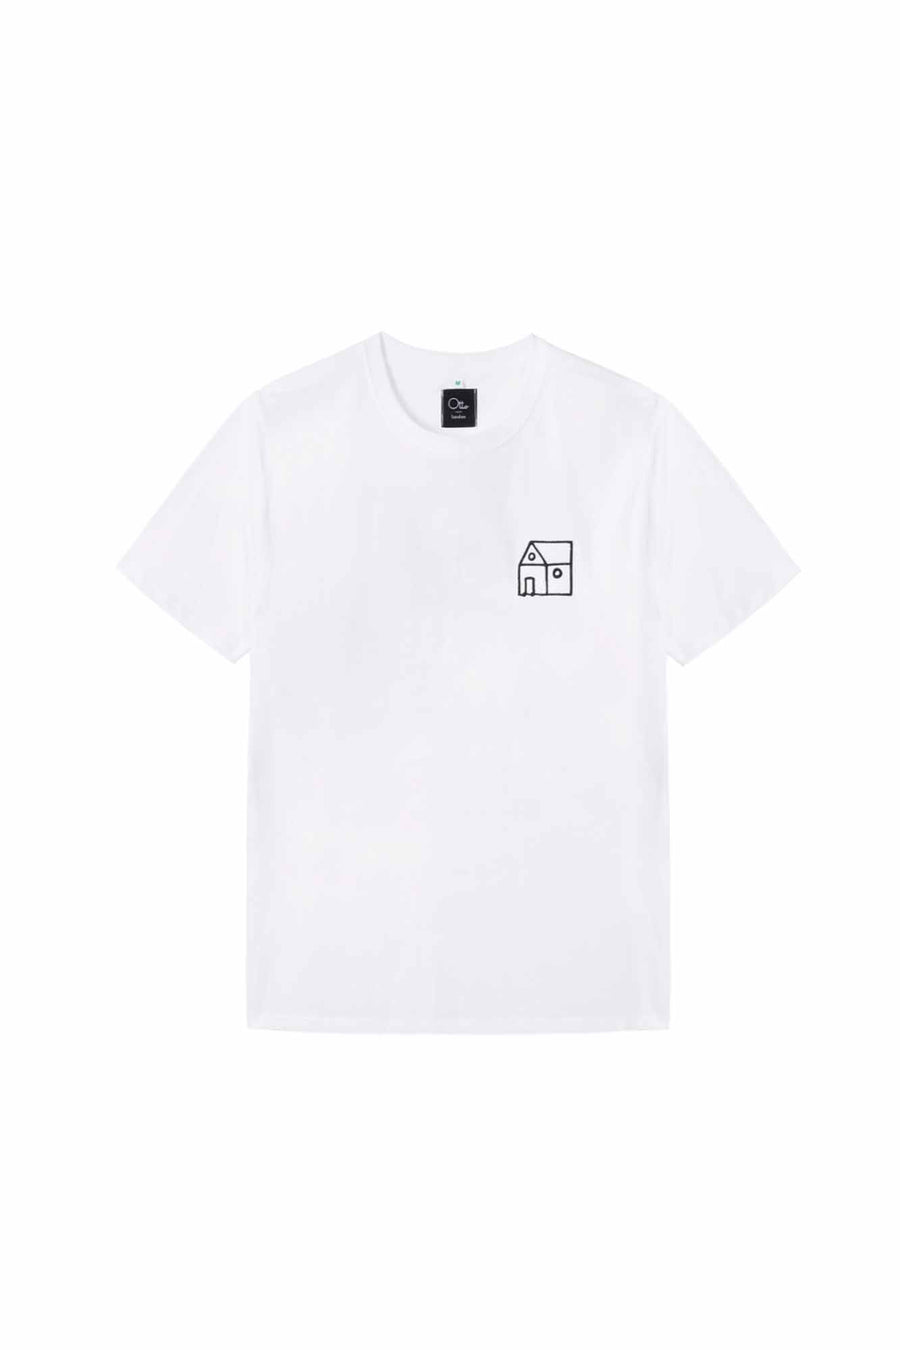 RAA x Otto London Tee - White